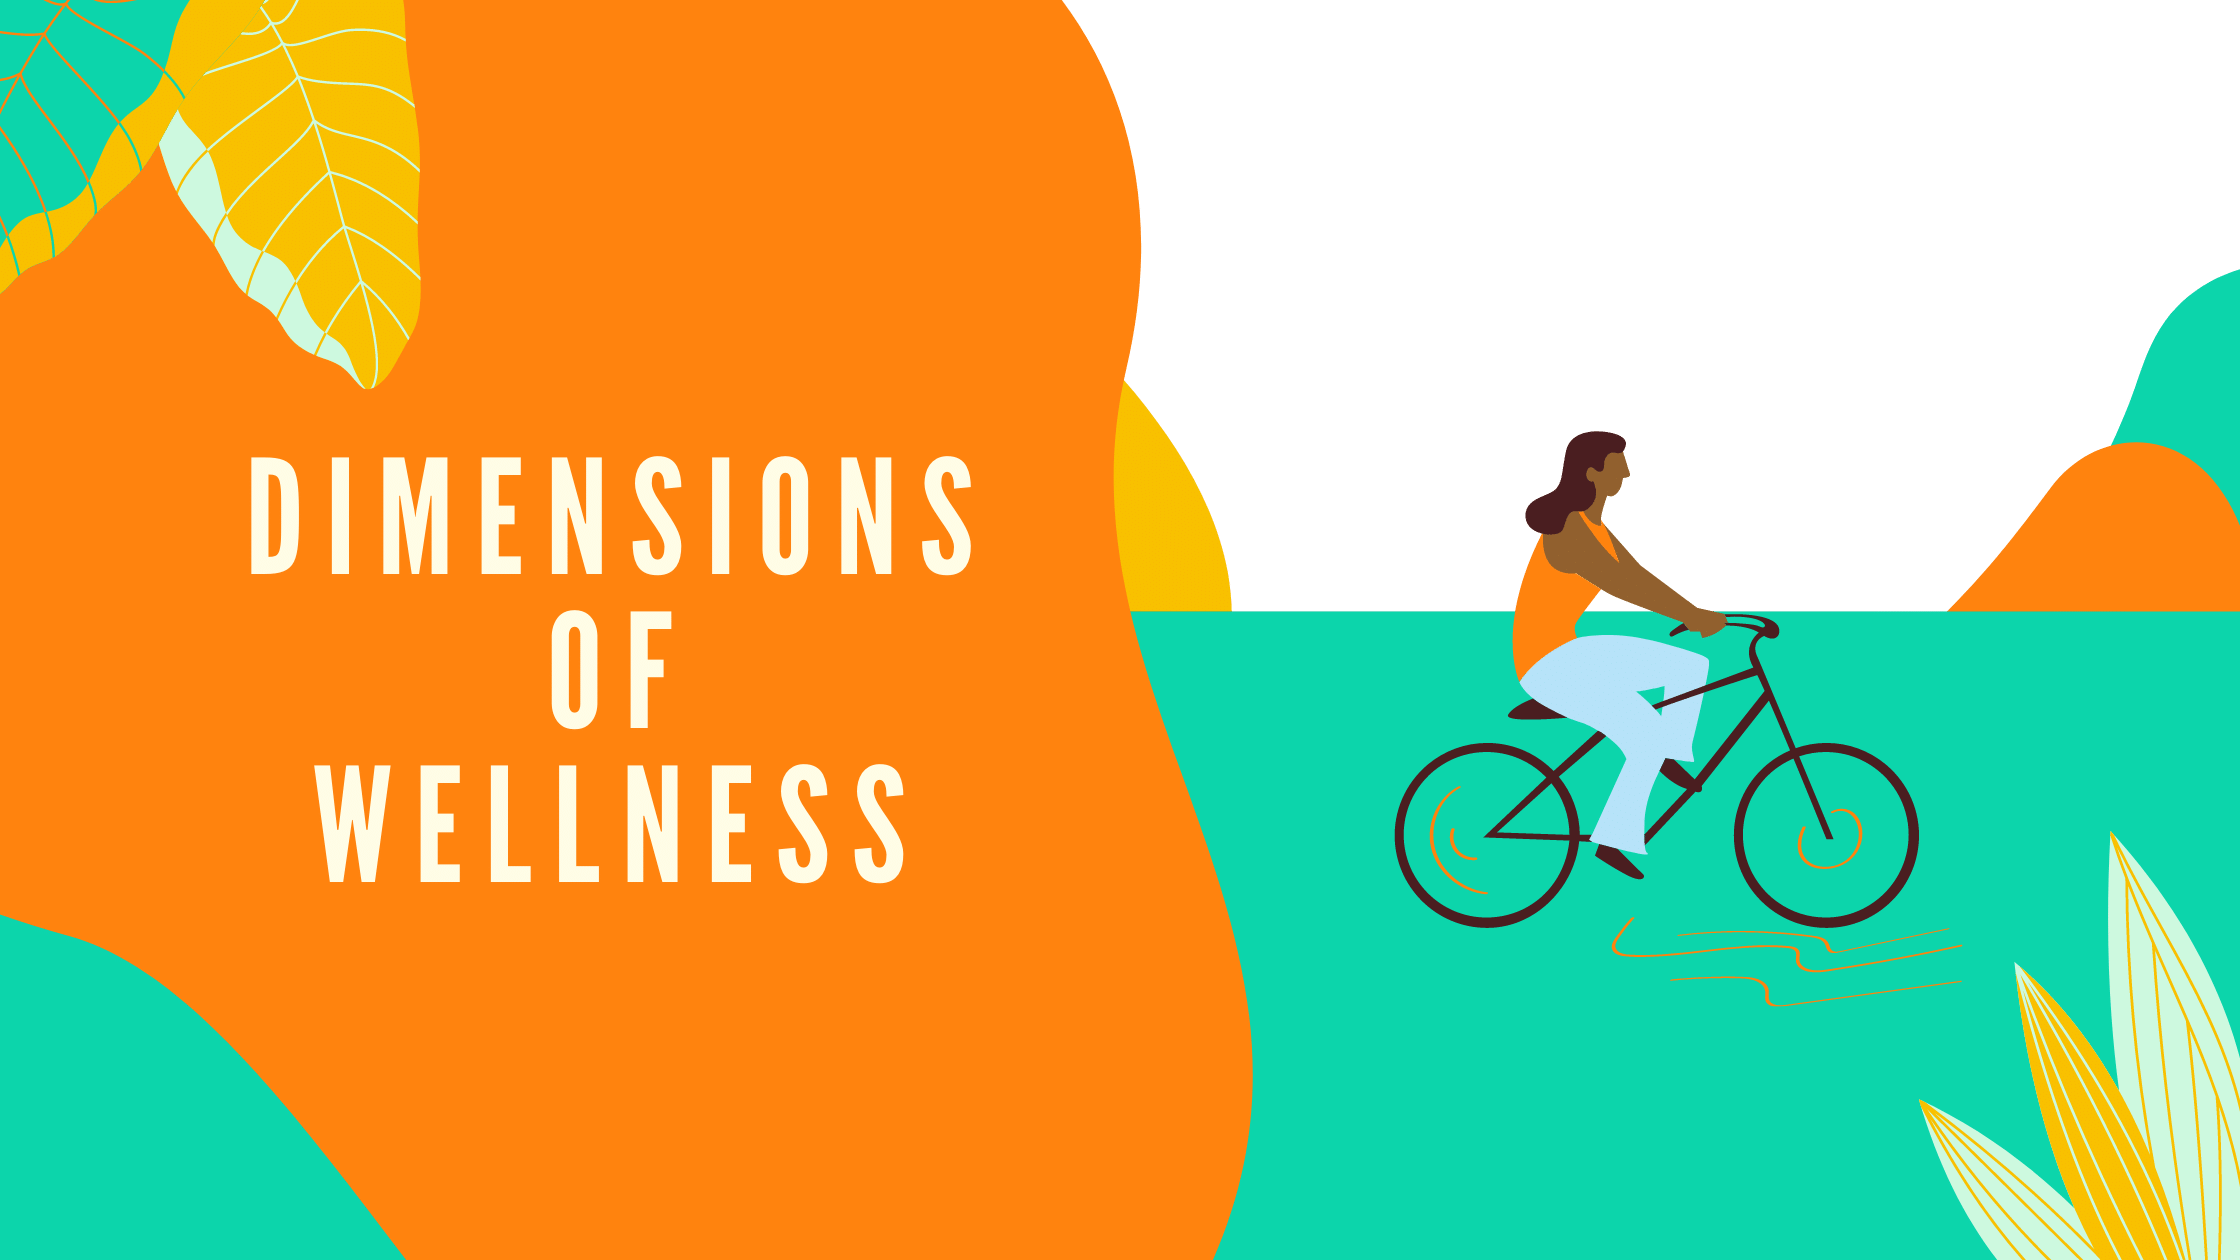 8 Dimensions of Wellness